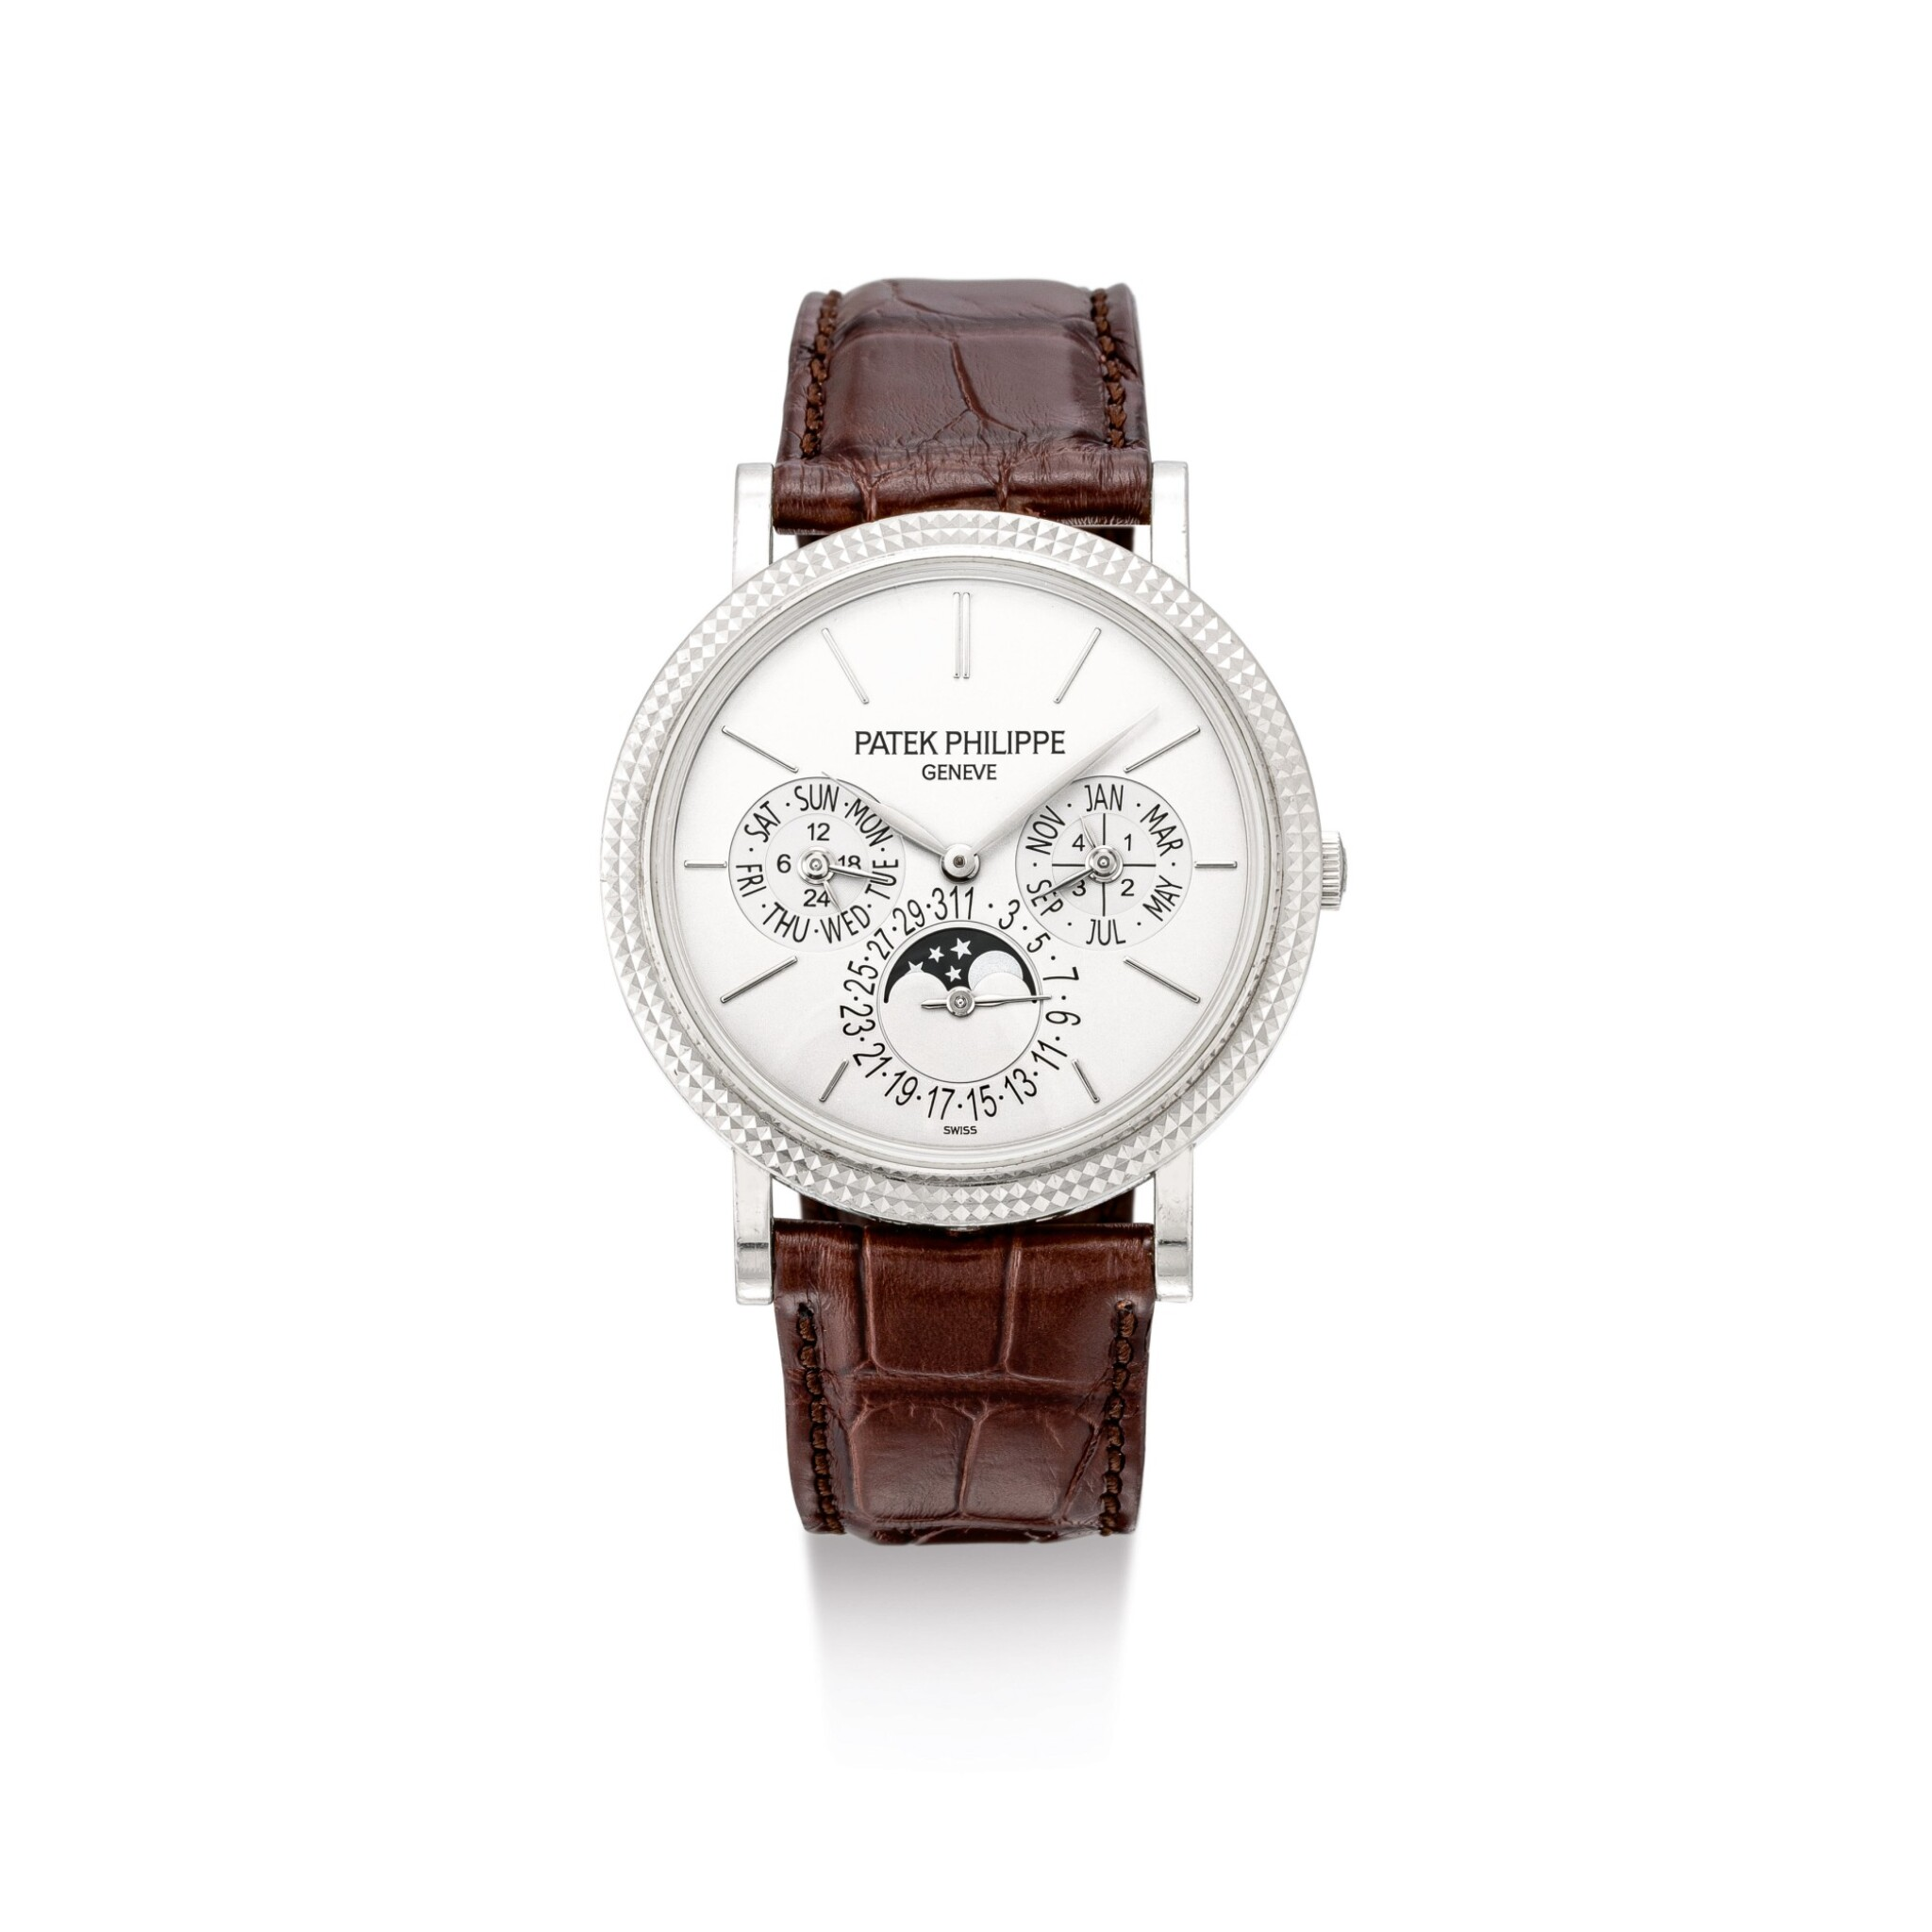 """View full screen - View 1 of Lot 2043. PATEK PHILIPPE   REFERENCE 5139, A WHITE GOLD PERPETUAL CALENDAR WRISTWATCH WITH MOON PHASES, 24 HOURS AND LEAP YEAR INDICATION, MADE IN 2010   百達翡麗   """"型號5139 白金萬年曆腕錶,備月相、24小時及閏年顯示,機芯編號5513864,錶殼編號4727337,2010年製""""."""